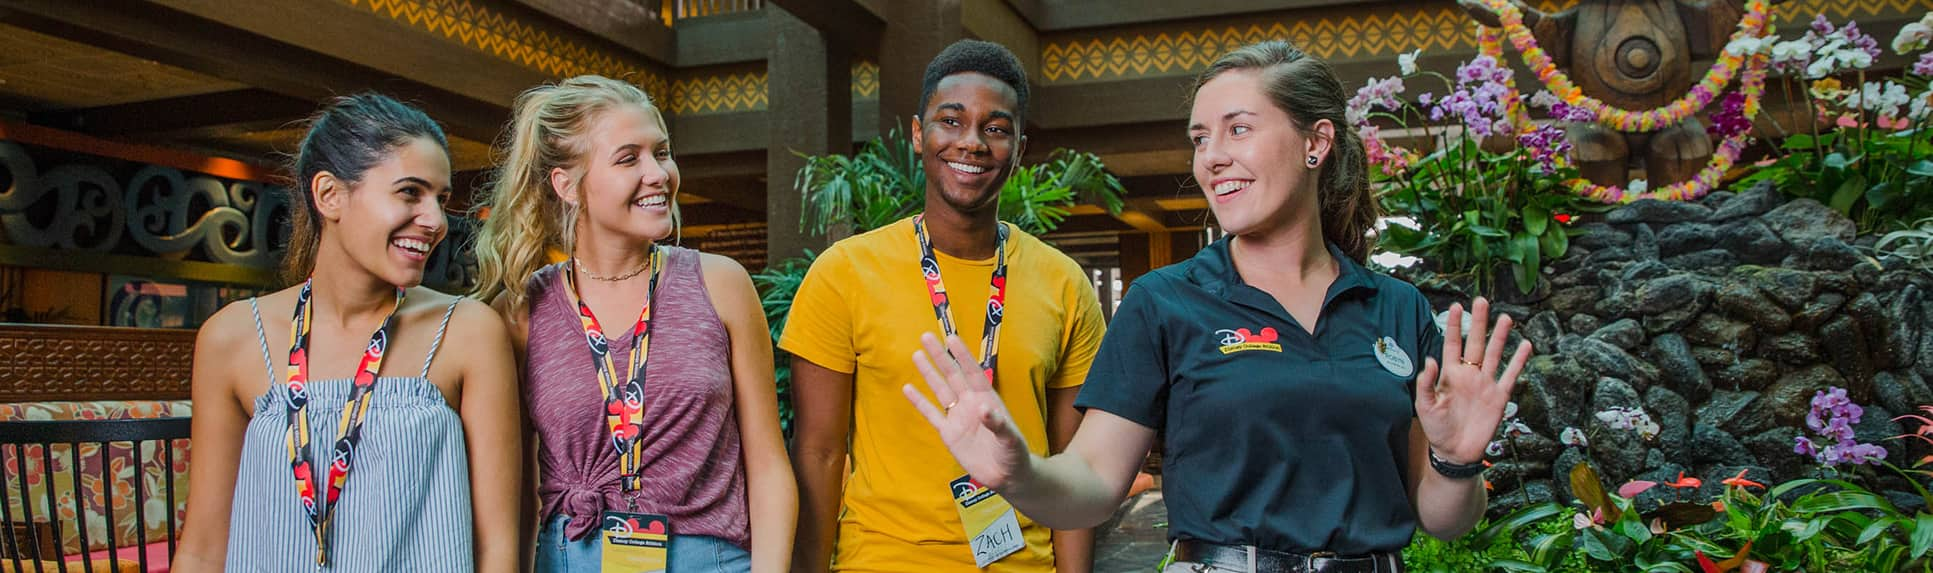 A female Disney staffer talks with 2 female students and 1 male student in a Disney Resort hotel